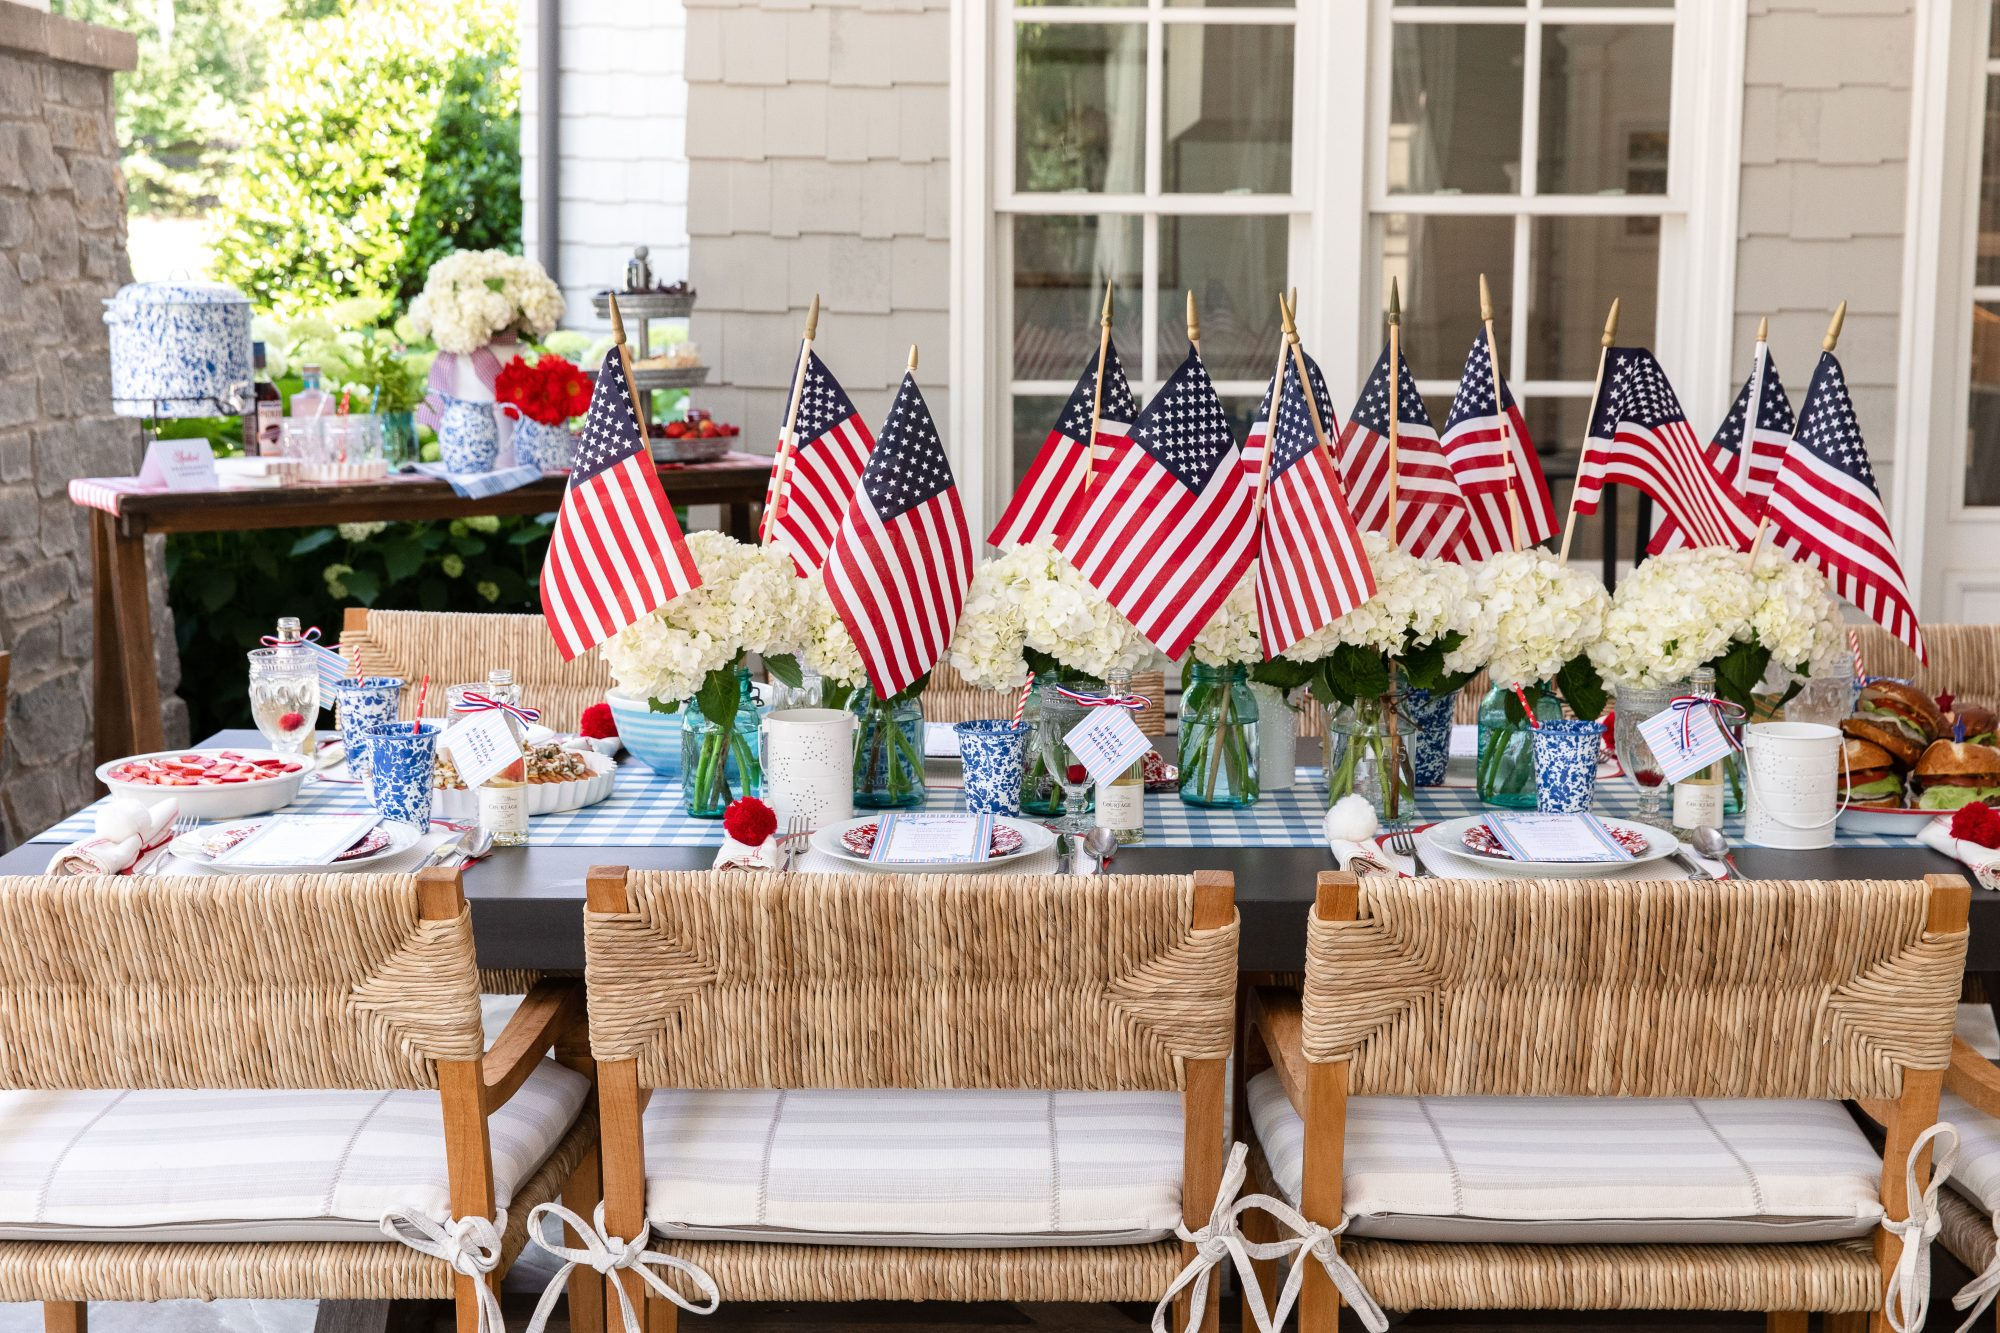 Katie Jacob's 4th of July Tablescape